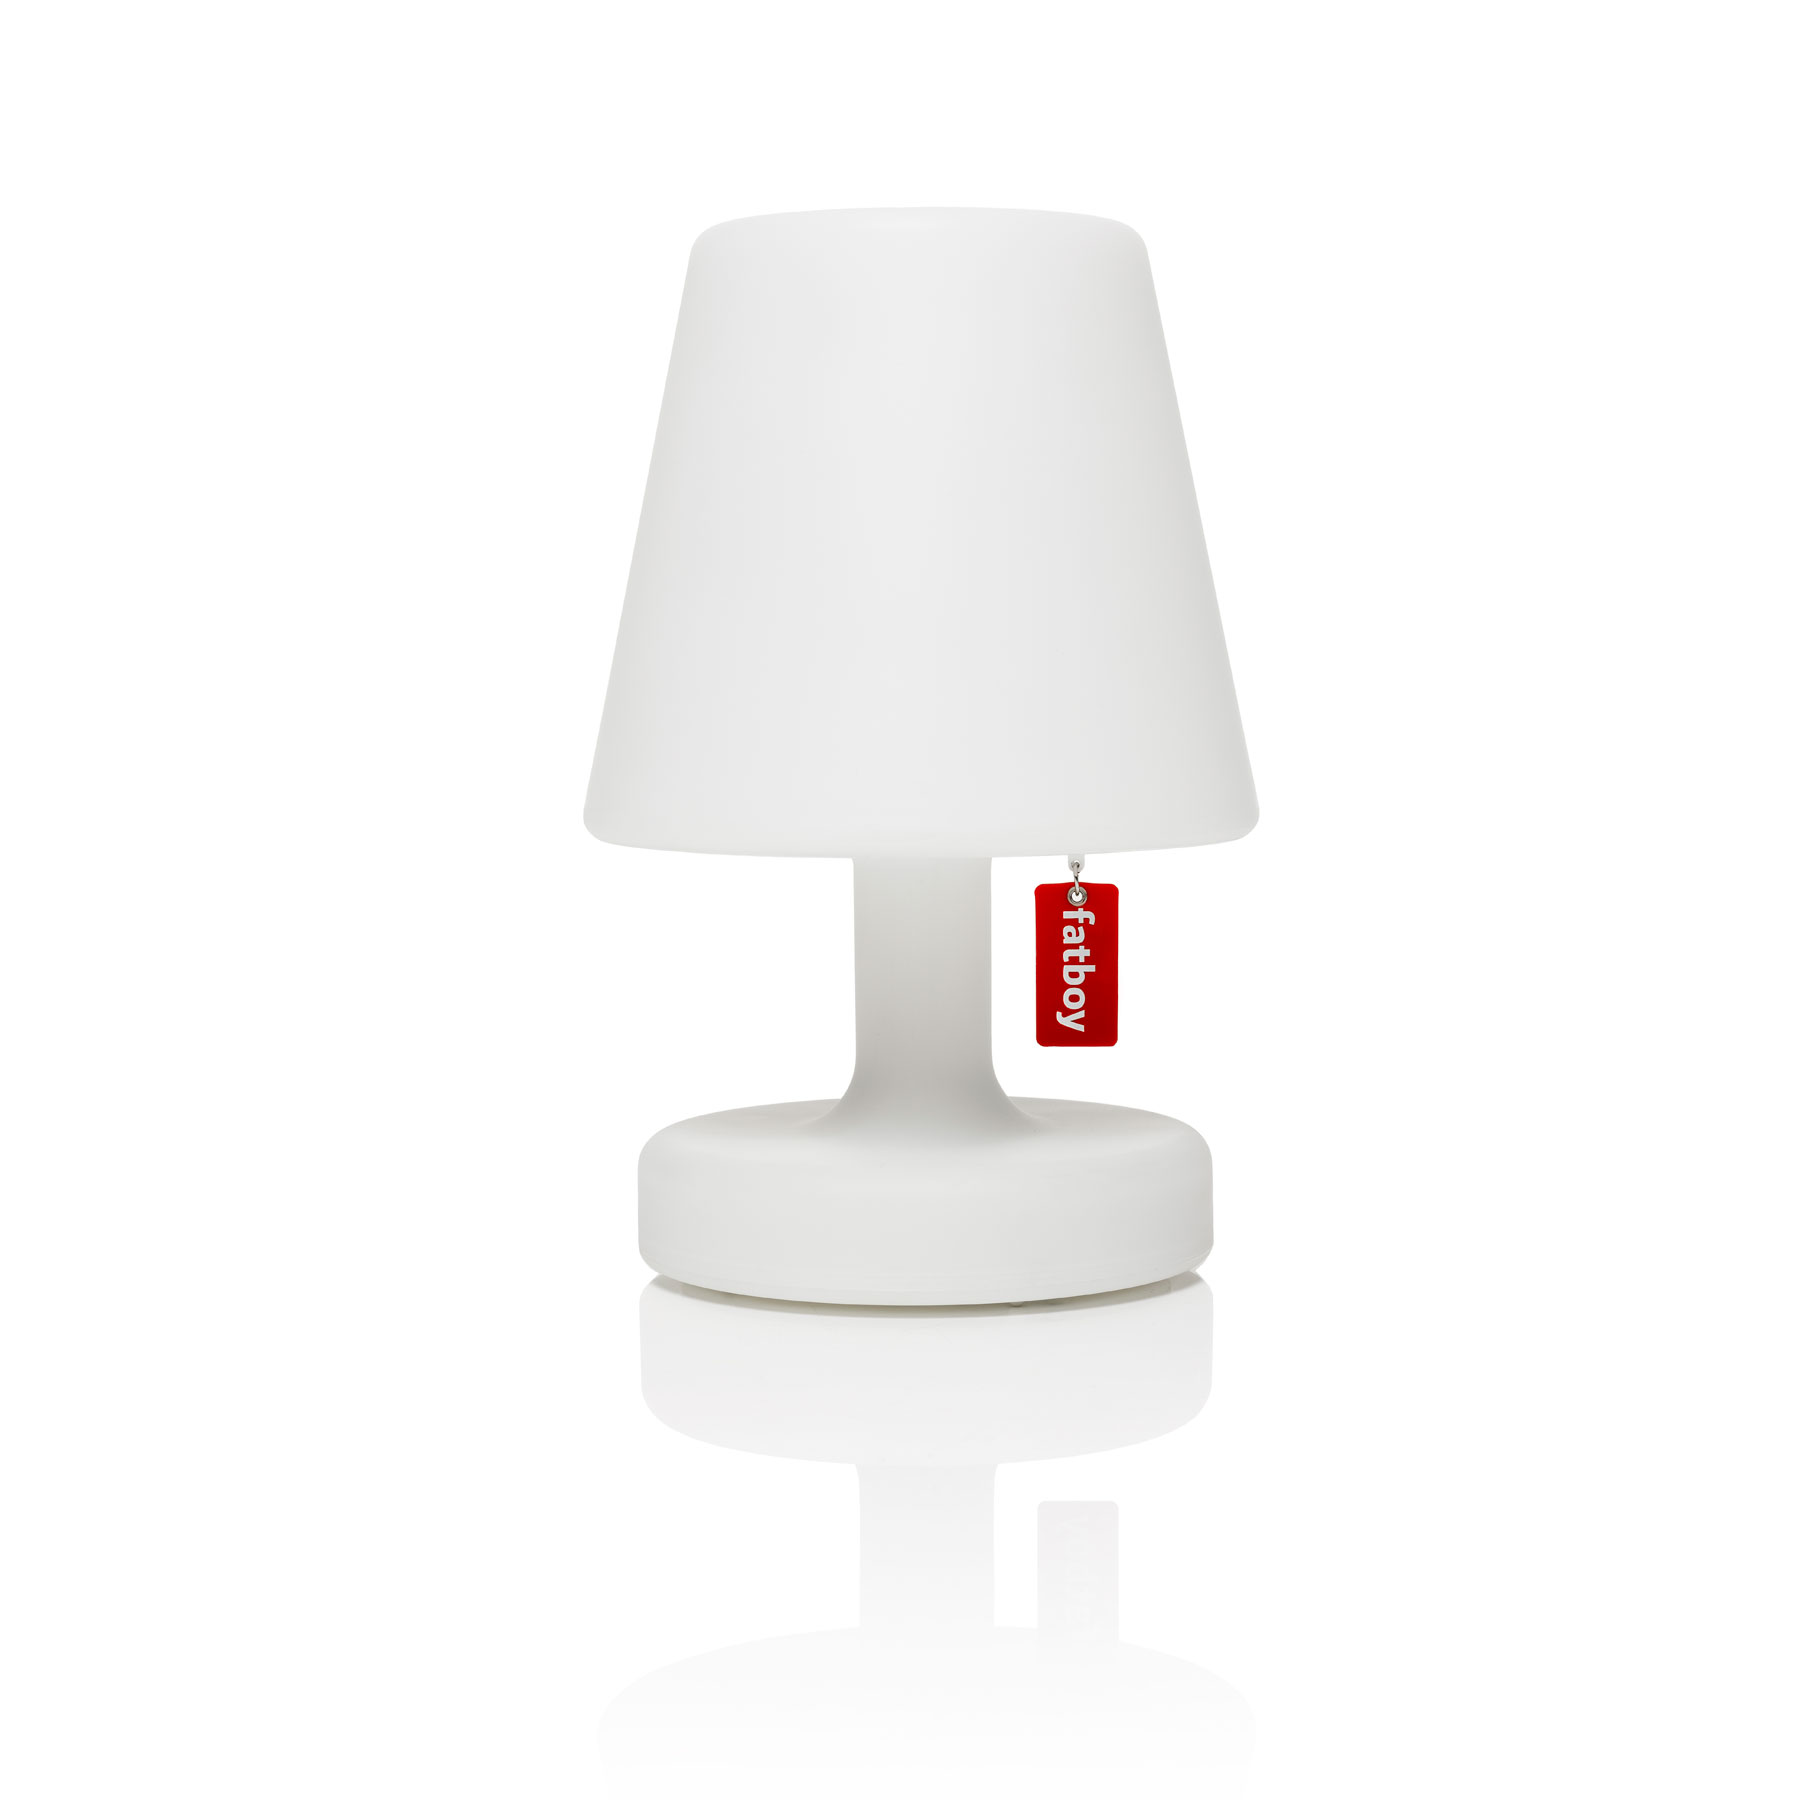 The petit cordless led table lamp by fatboy usa etppck wht edison the petit cordless led table lamp by fatboy usa etppck wht geotapseo Images